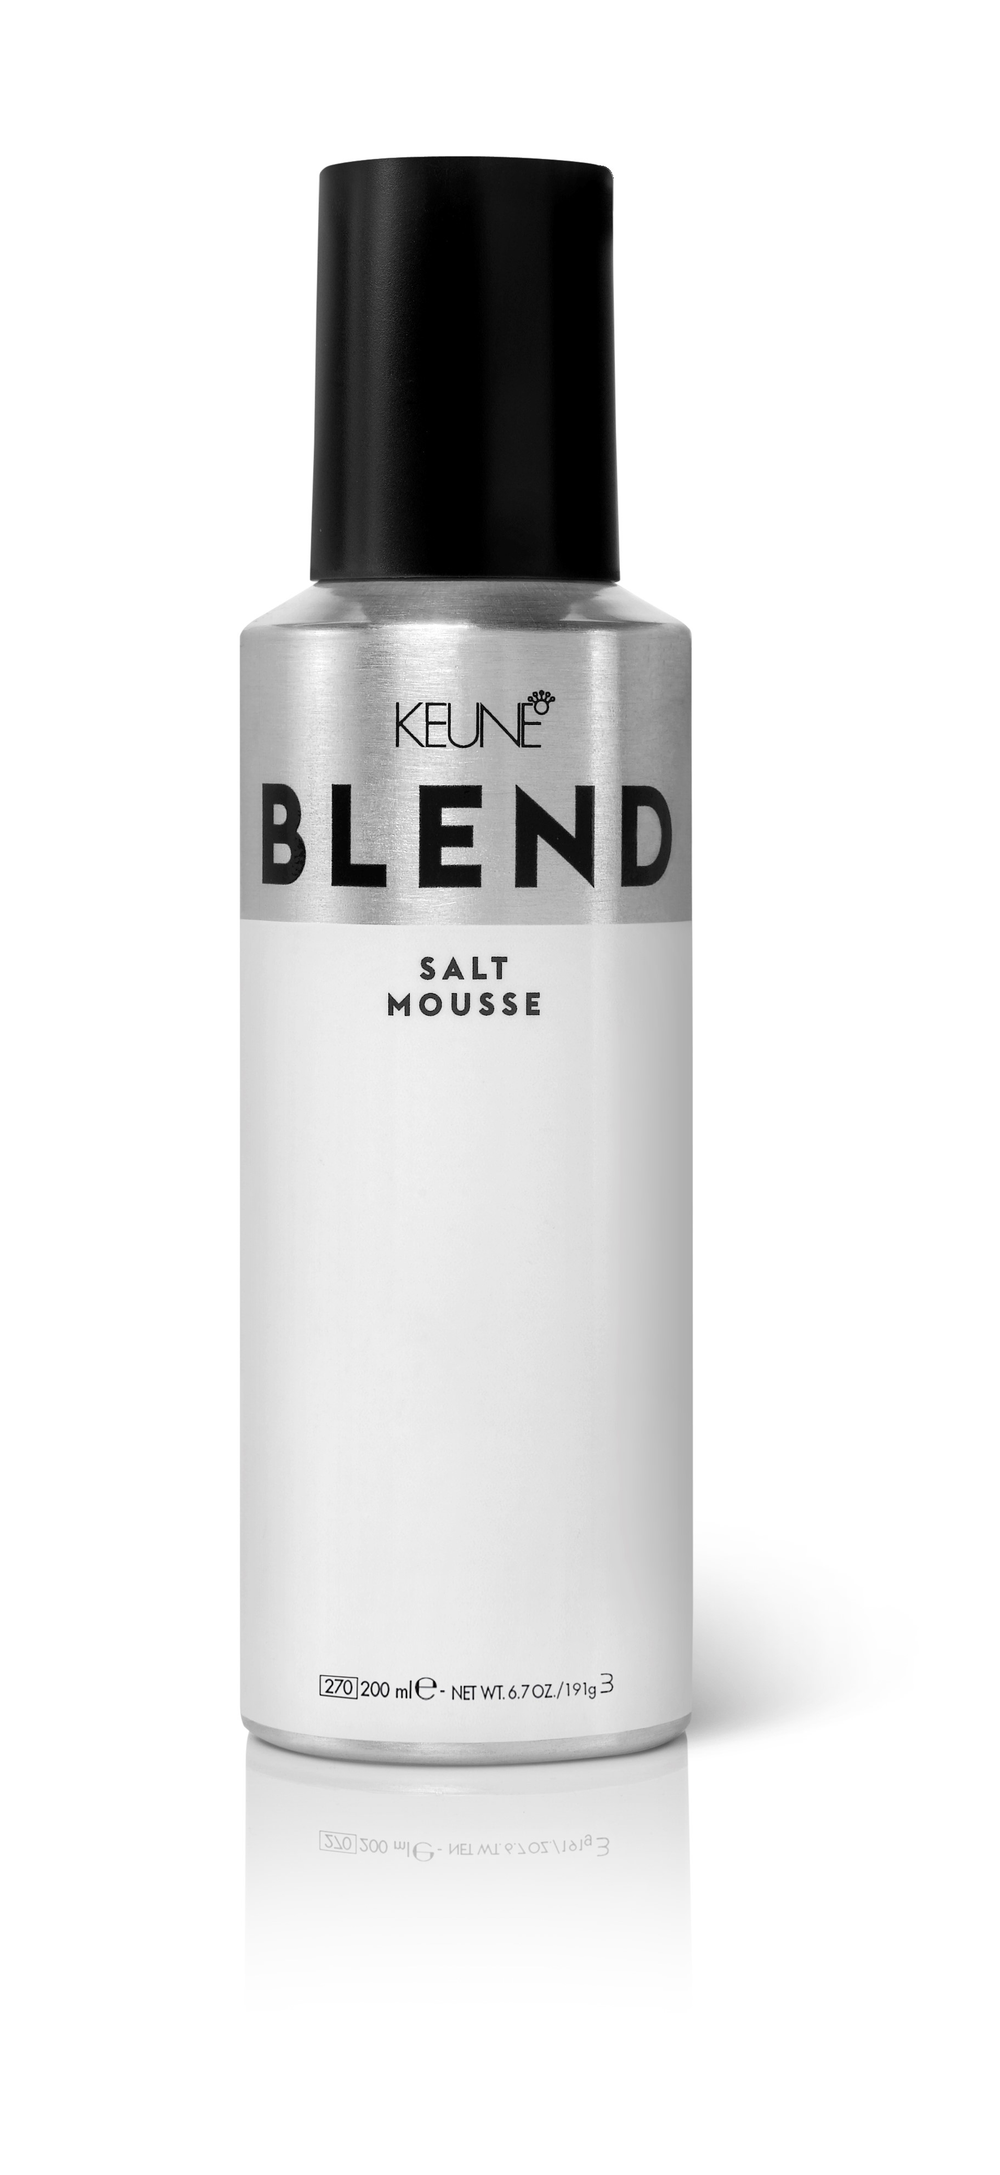 """<p>""""Keune BLEND Salt Mousse is meant for finer hair but can be used on anyone! The best part about this mousse is you don't always have to use heat to get it to do its thing, but when you do—woah, watch out! Massive volume! Touseled texture! And workable waves! It's is the only mousse I use on my hair and the<a href=""""https://www.instagram.com/explore/tags/1/"""">#1</a>mousse I sell to my clients!""""</p> <p>-@<a href=""""https://www.instagram.com/morganweir/""""><strong>morganweir</strong></a></p>"""